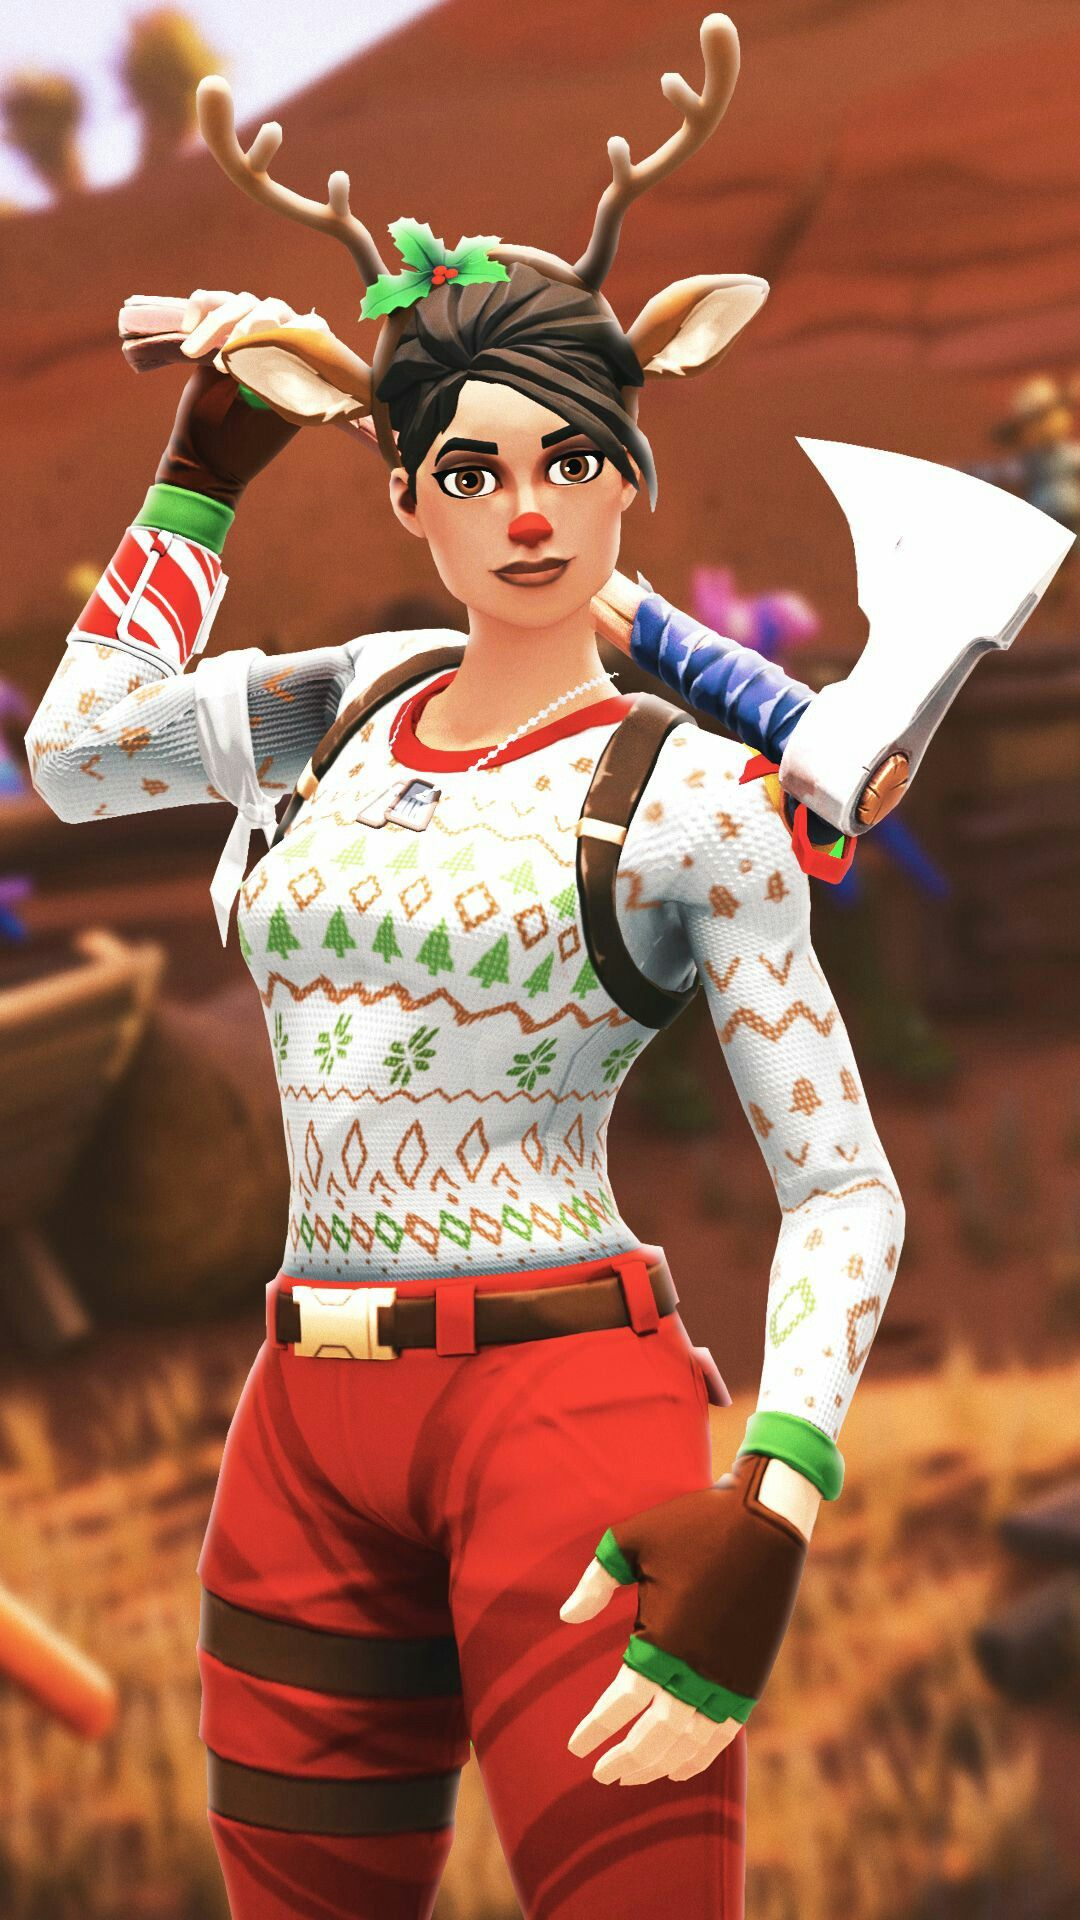 50 Fortnite Christmas Ideas In 2020 Fortnite Gaming Wallpapers Best Gaming Wallpapers